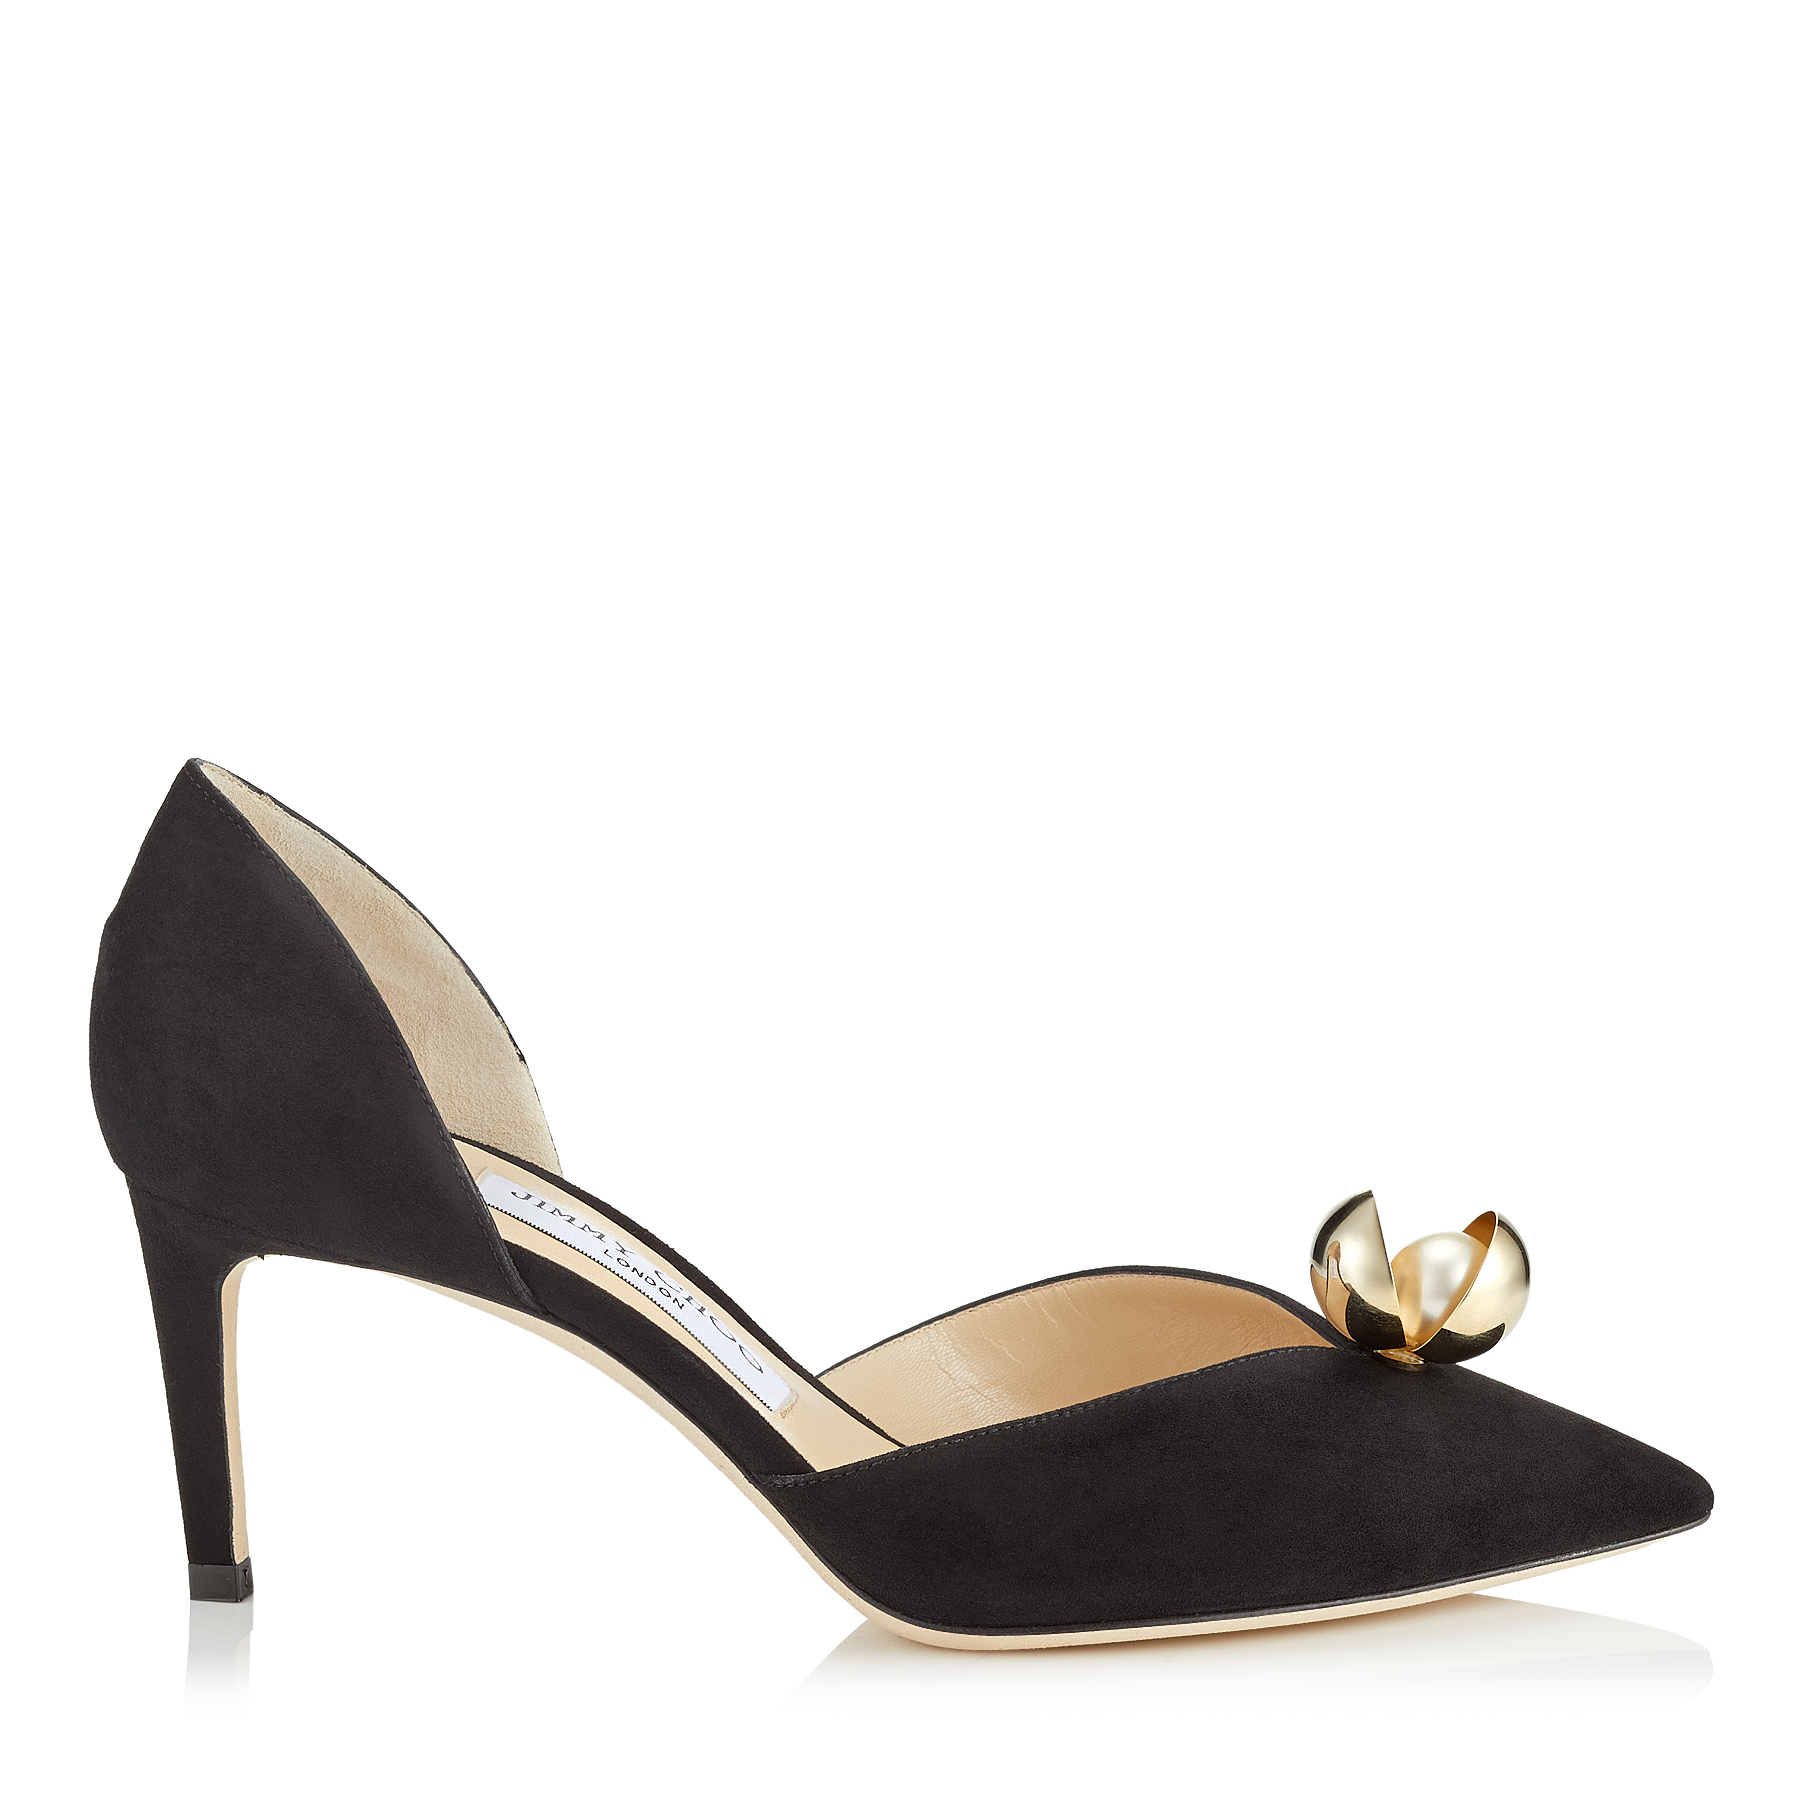 SABINE 65 Black Suede Pointy Toe Pumps with Oyster Bead Pearl by Jimmy Choo